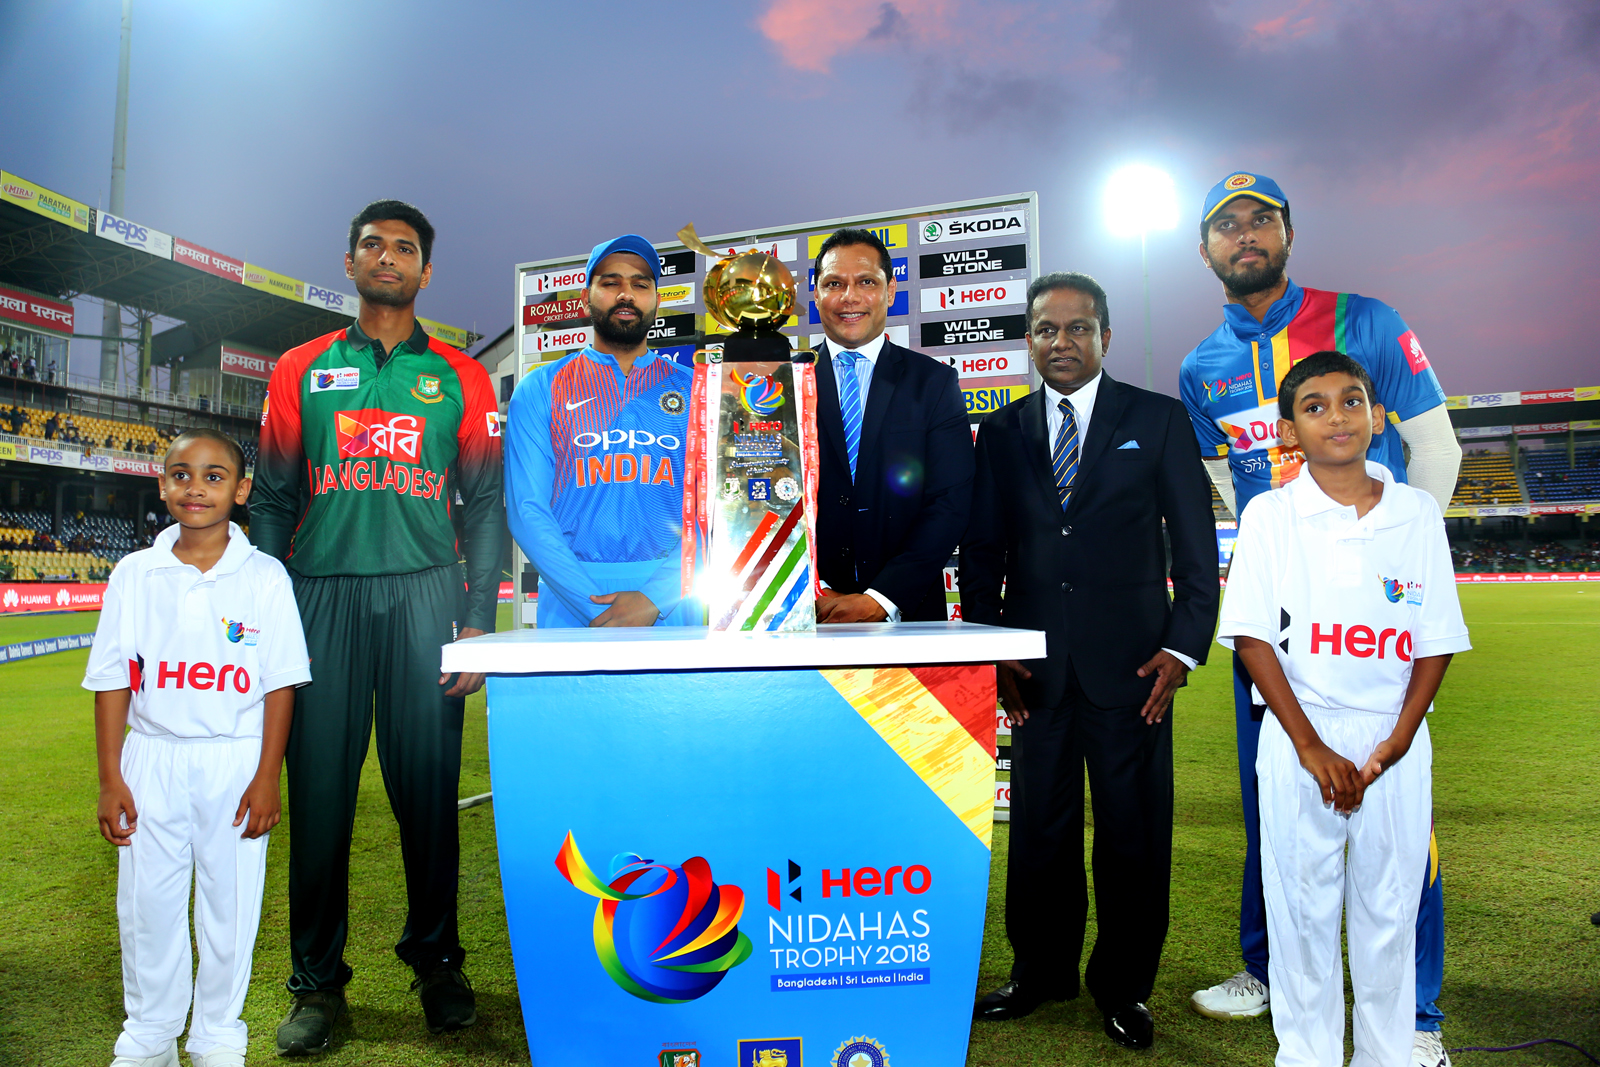 Captains pose with the 2018 Nidahas Trophy